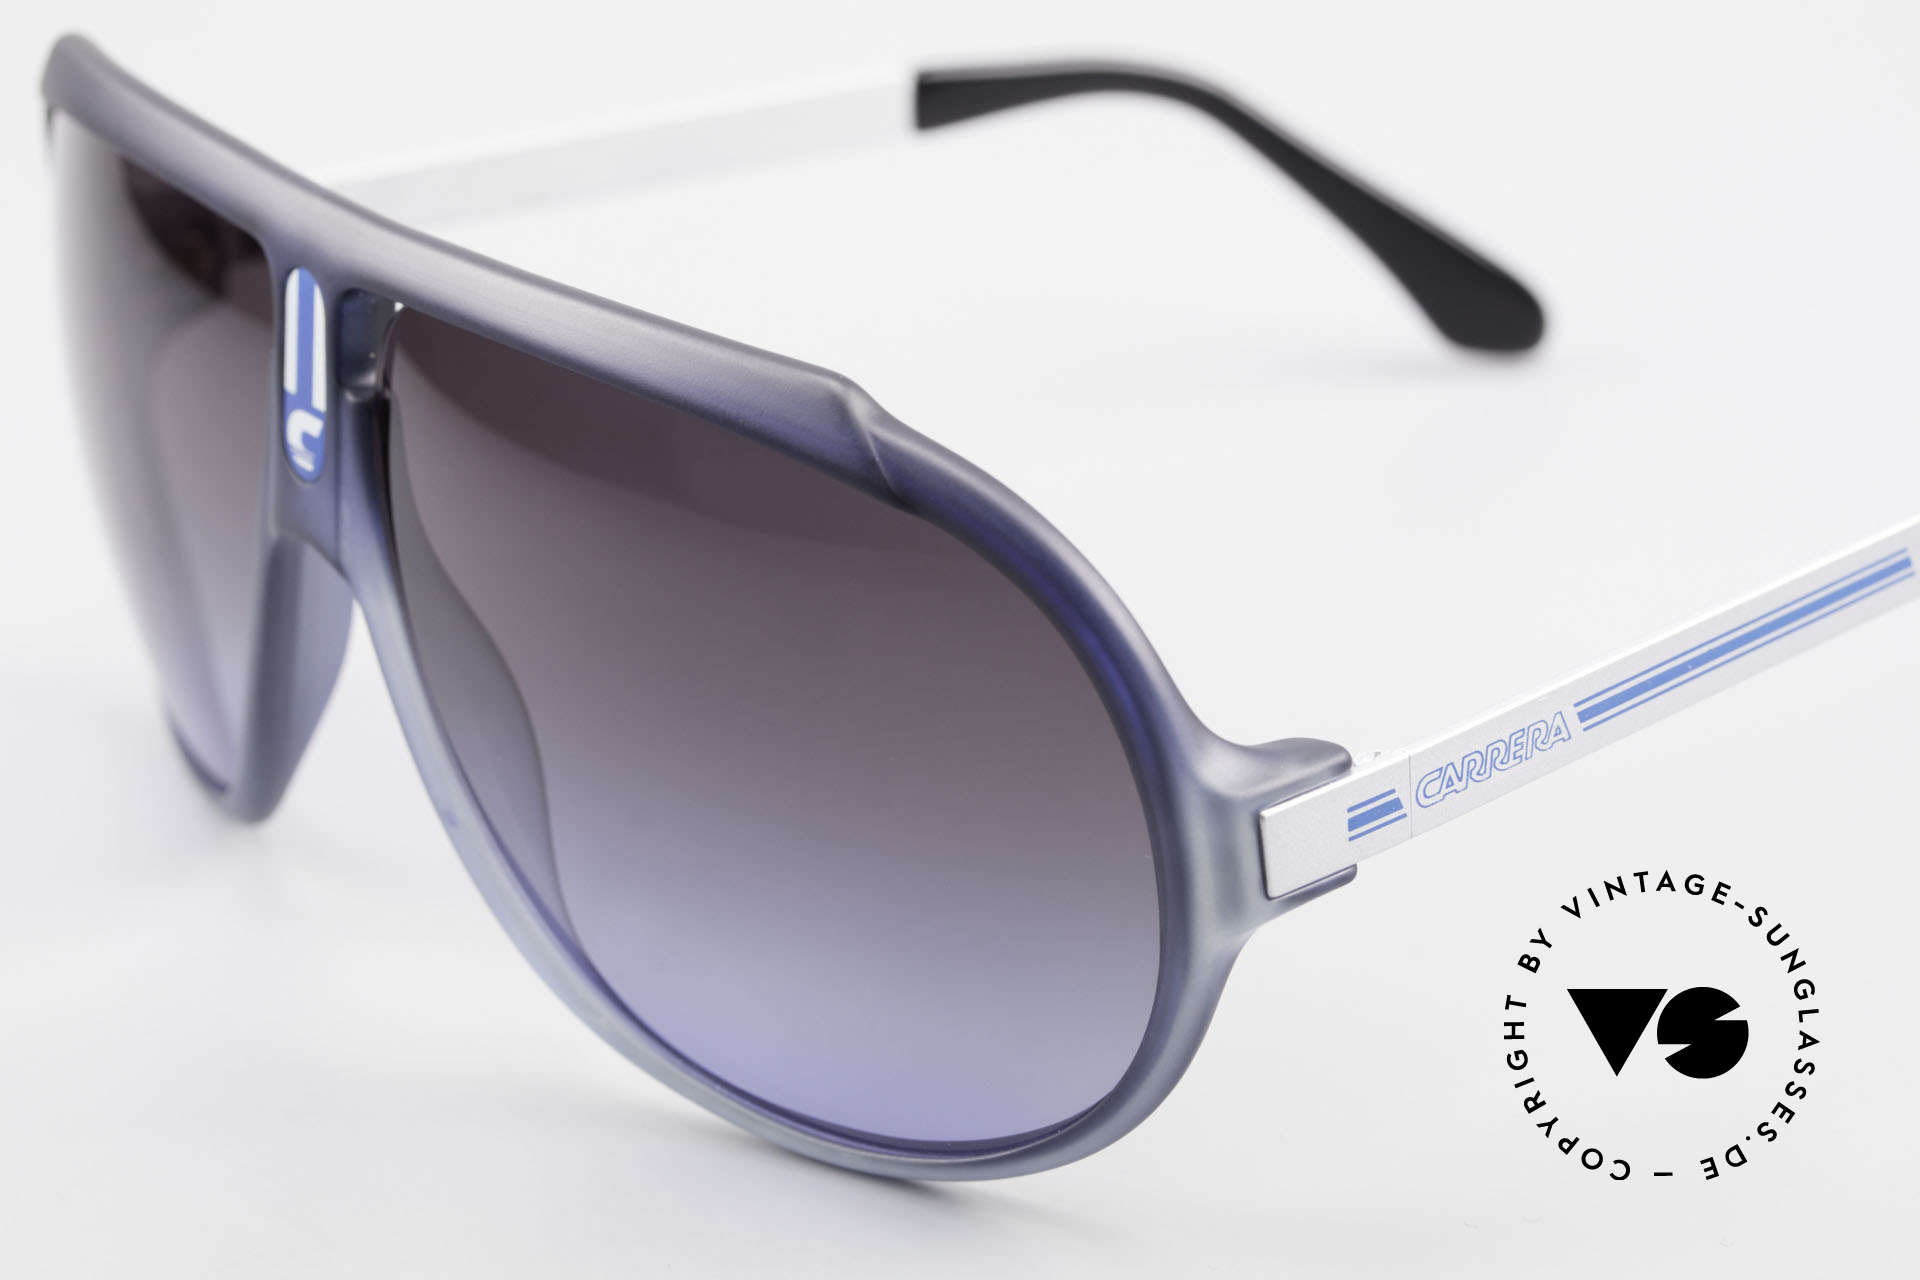 Carrera 5512 Iconic 80's Vintage Sunglasses, cult object and sought-after collector's item, worldwide, Made for Men